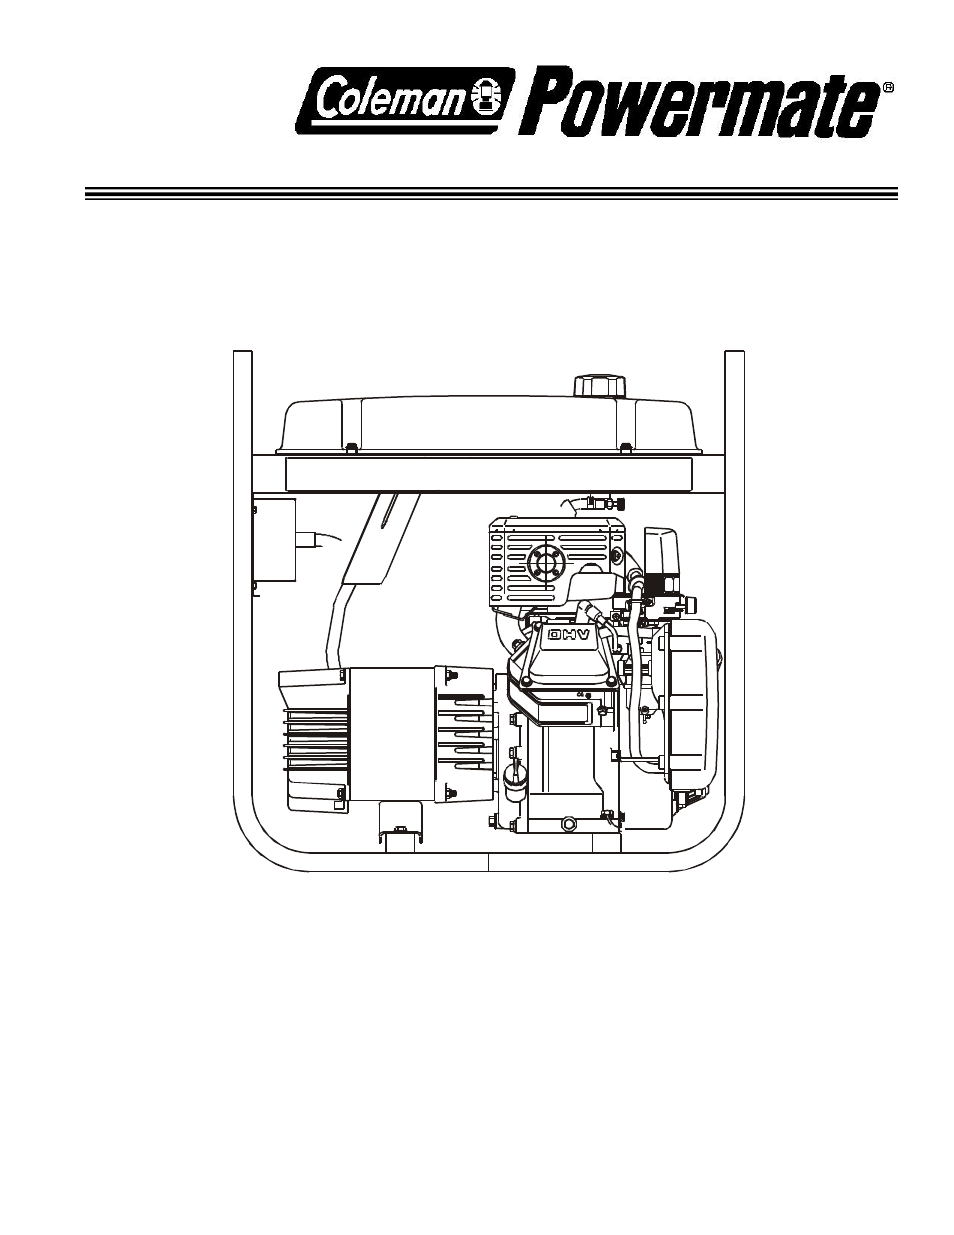 Powermate Pro-Gen 5000 PM0535202.04 User Manual | 8 pages | Also for:  PM0535202.04